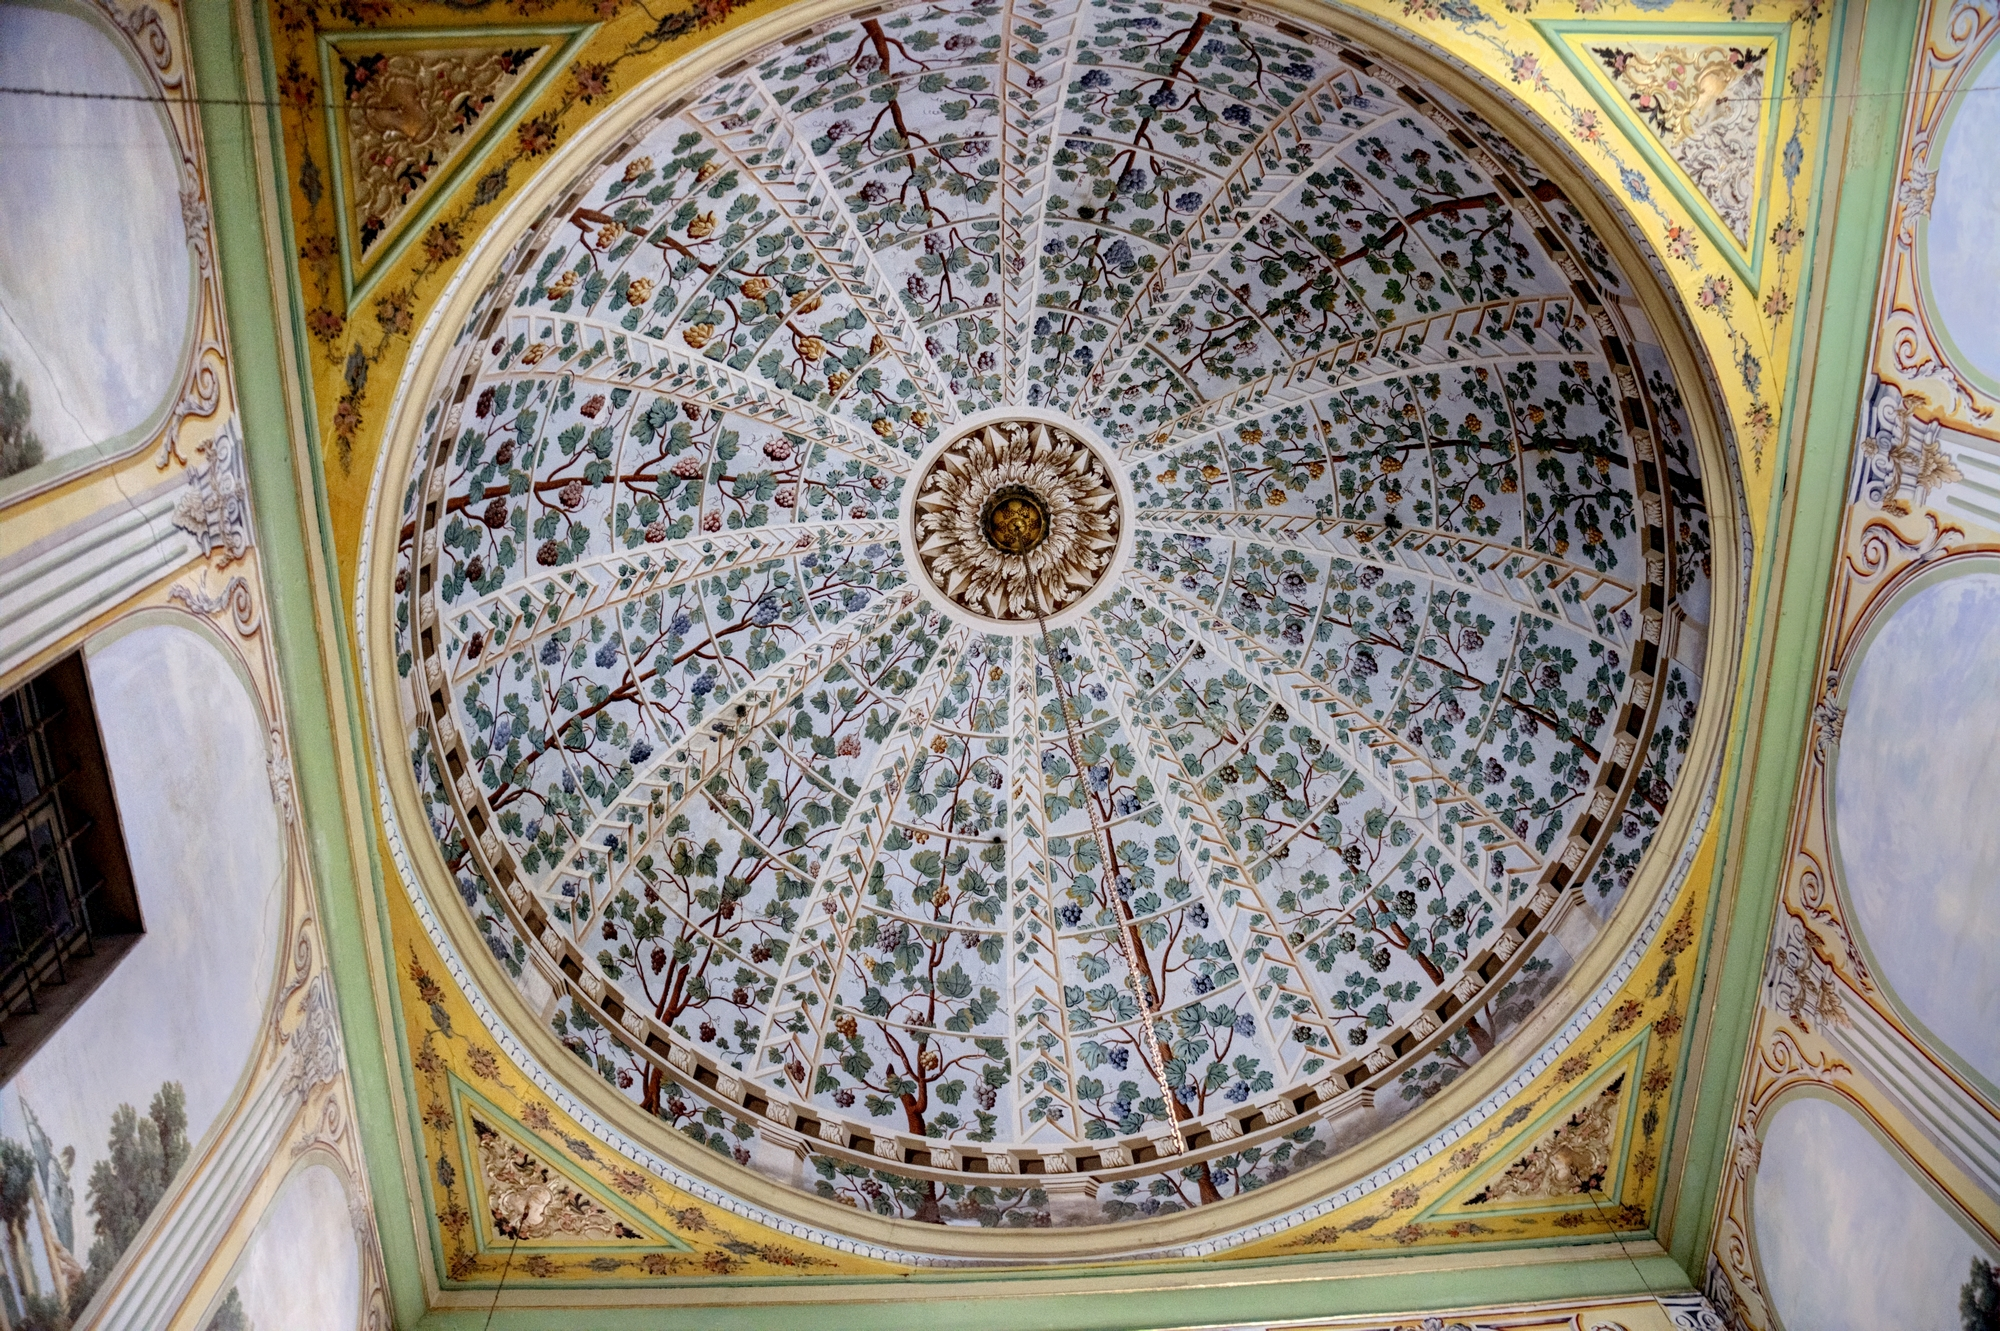 Domed ceiling of the harem room in Topkapı Palace in Istanbul